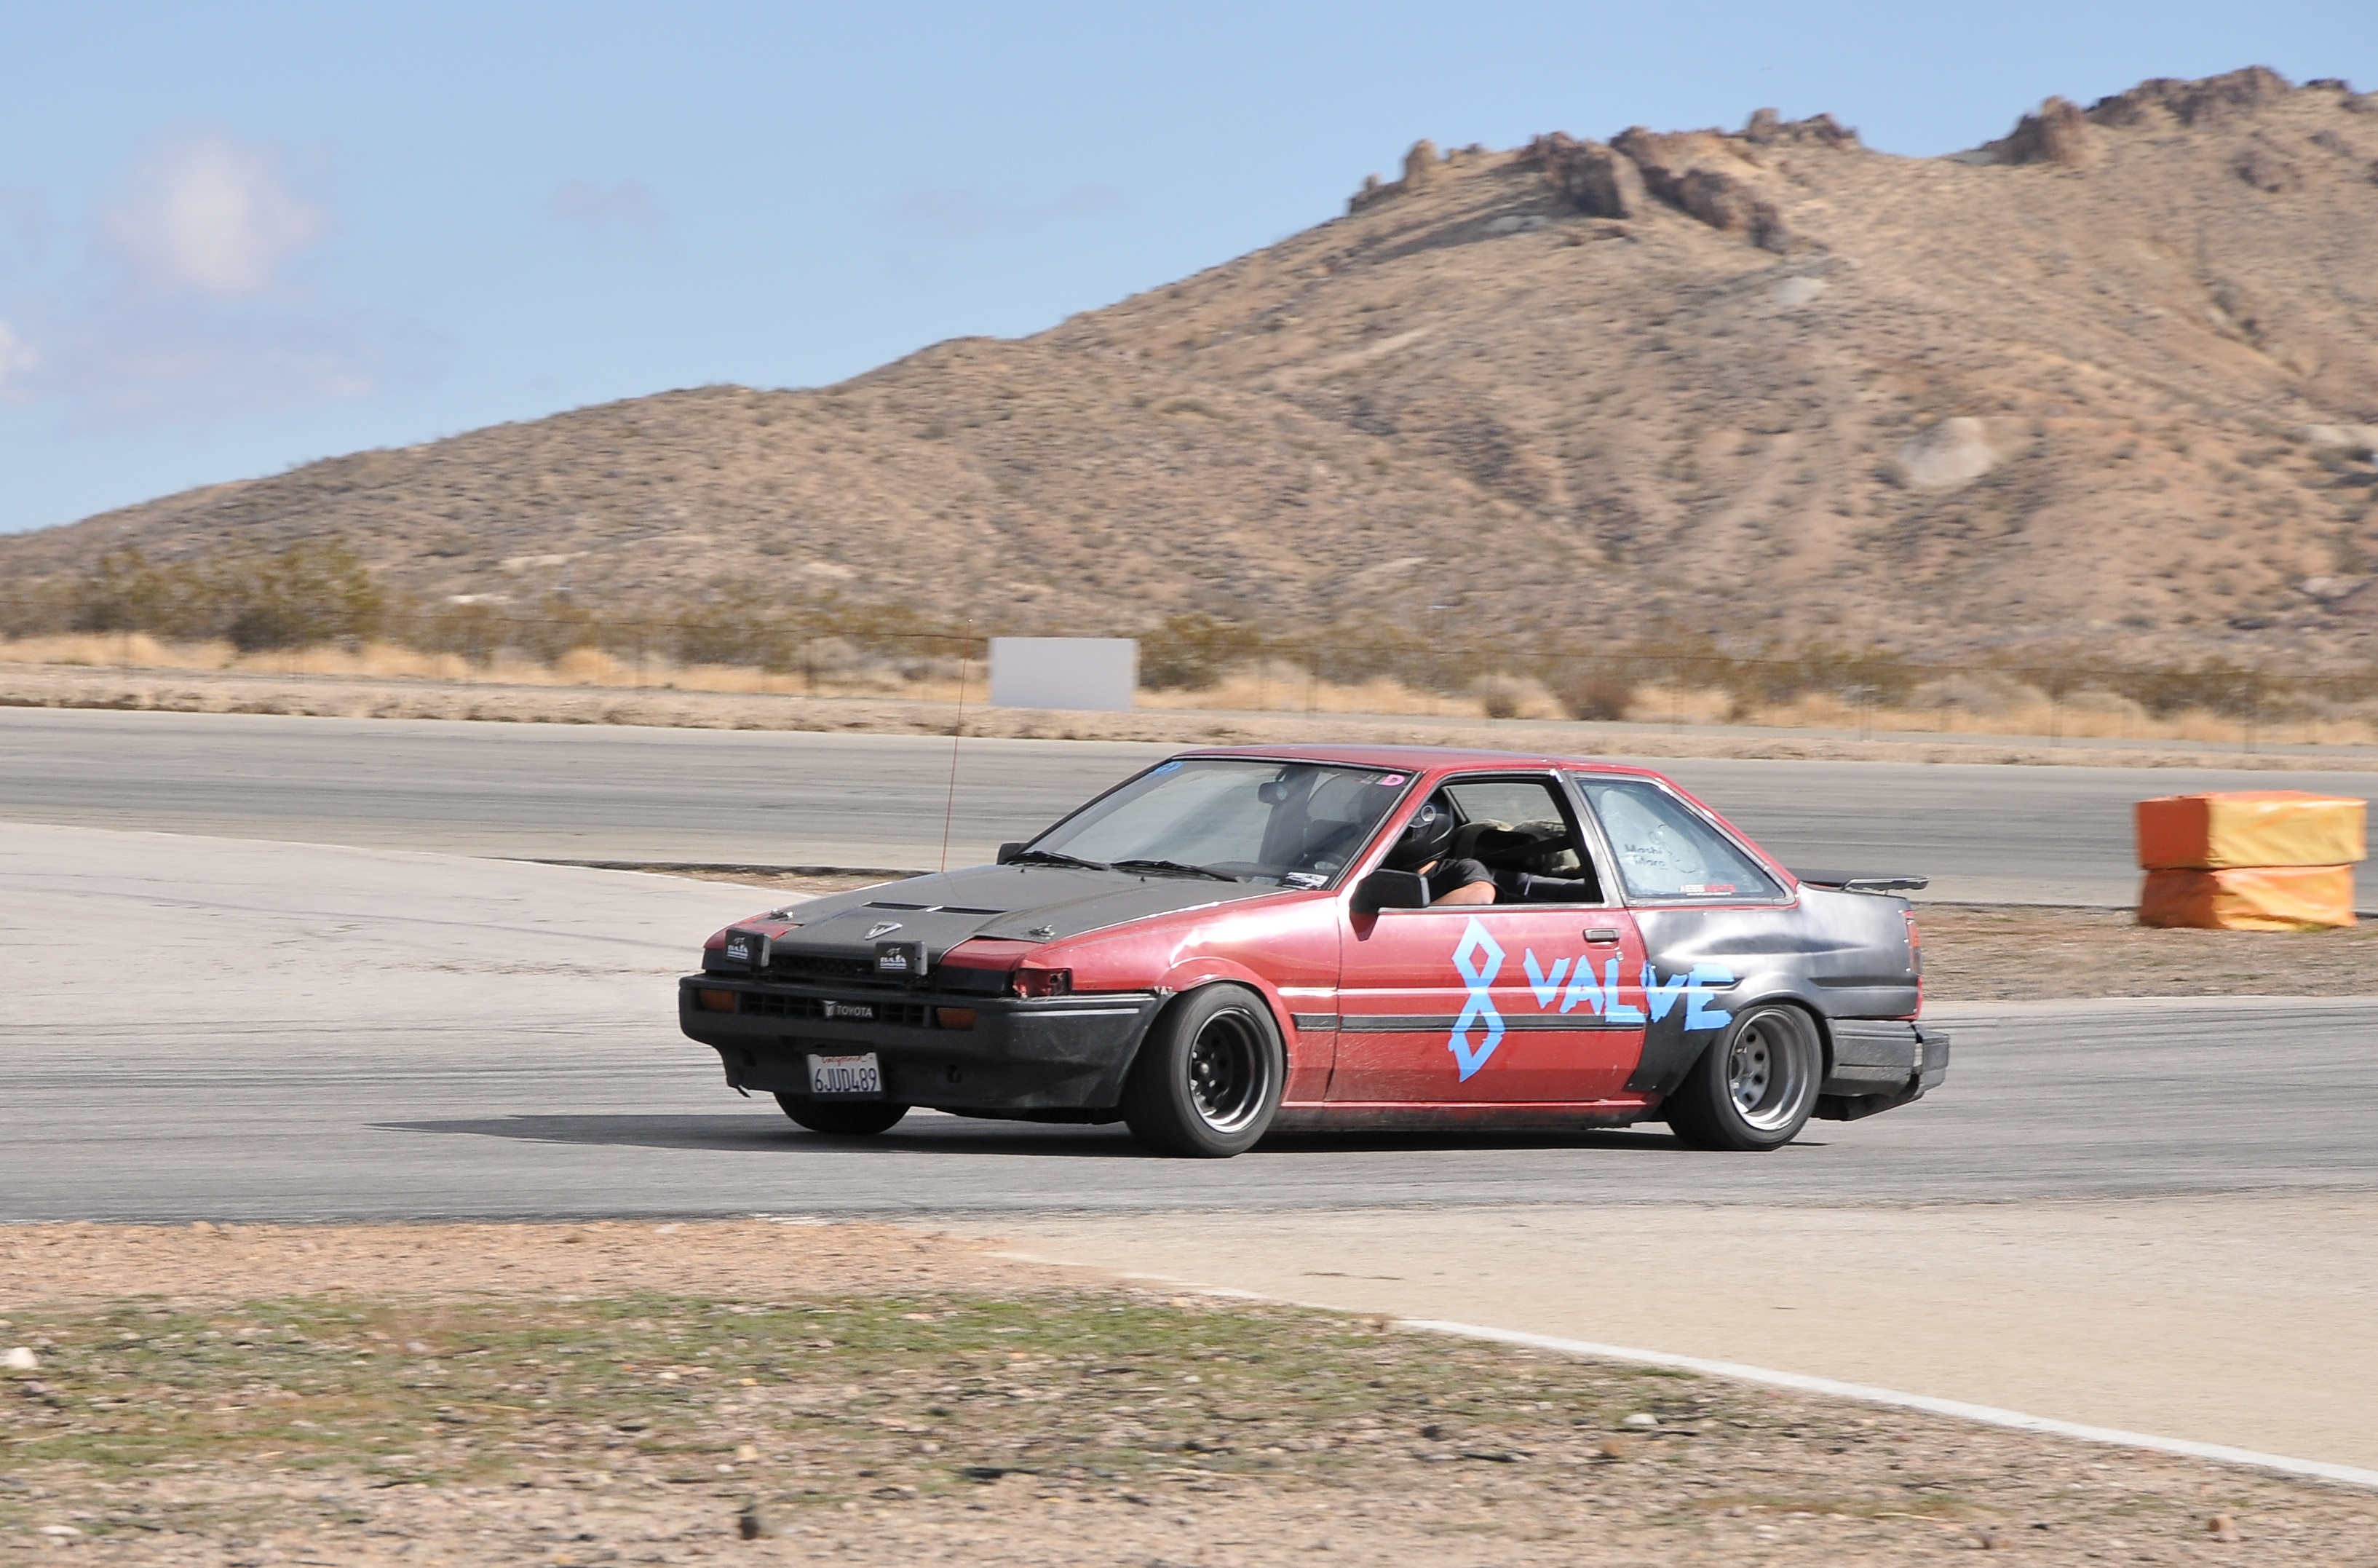 AE86, coupe, 4ac, 8 valve,track day, grip day,